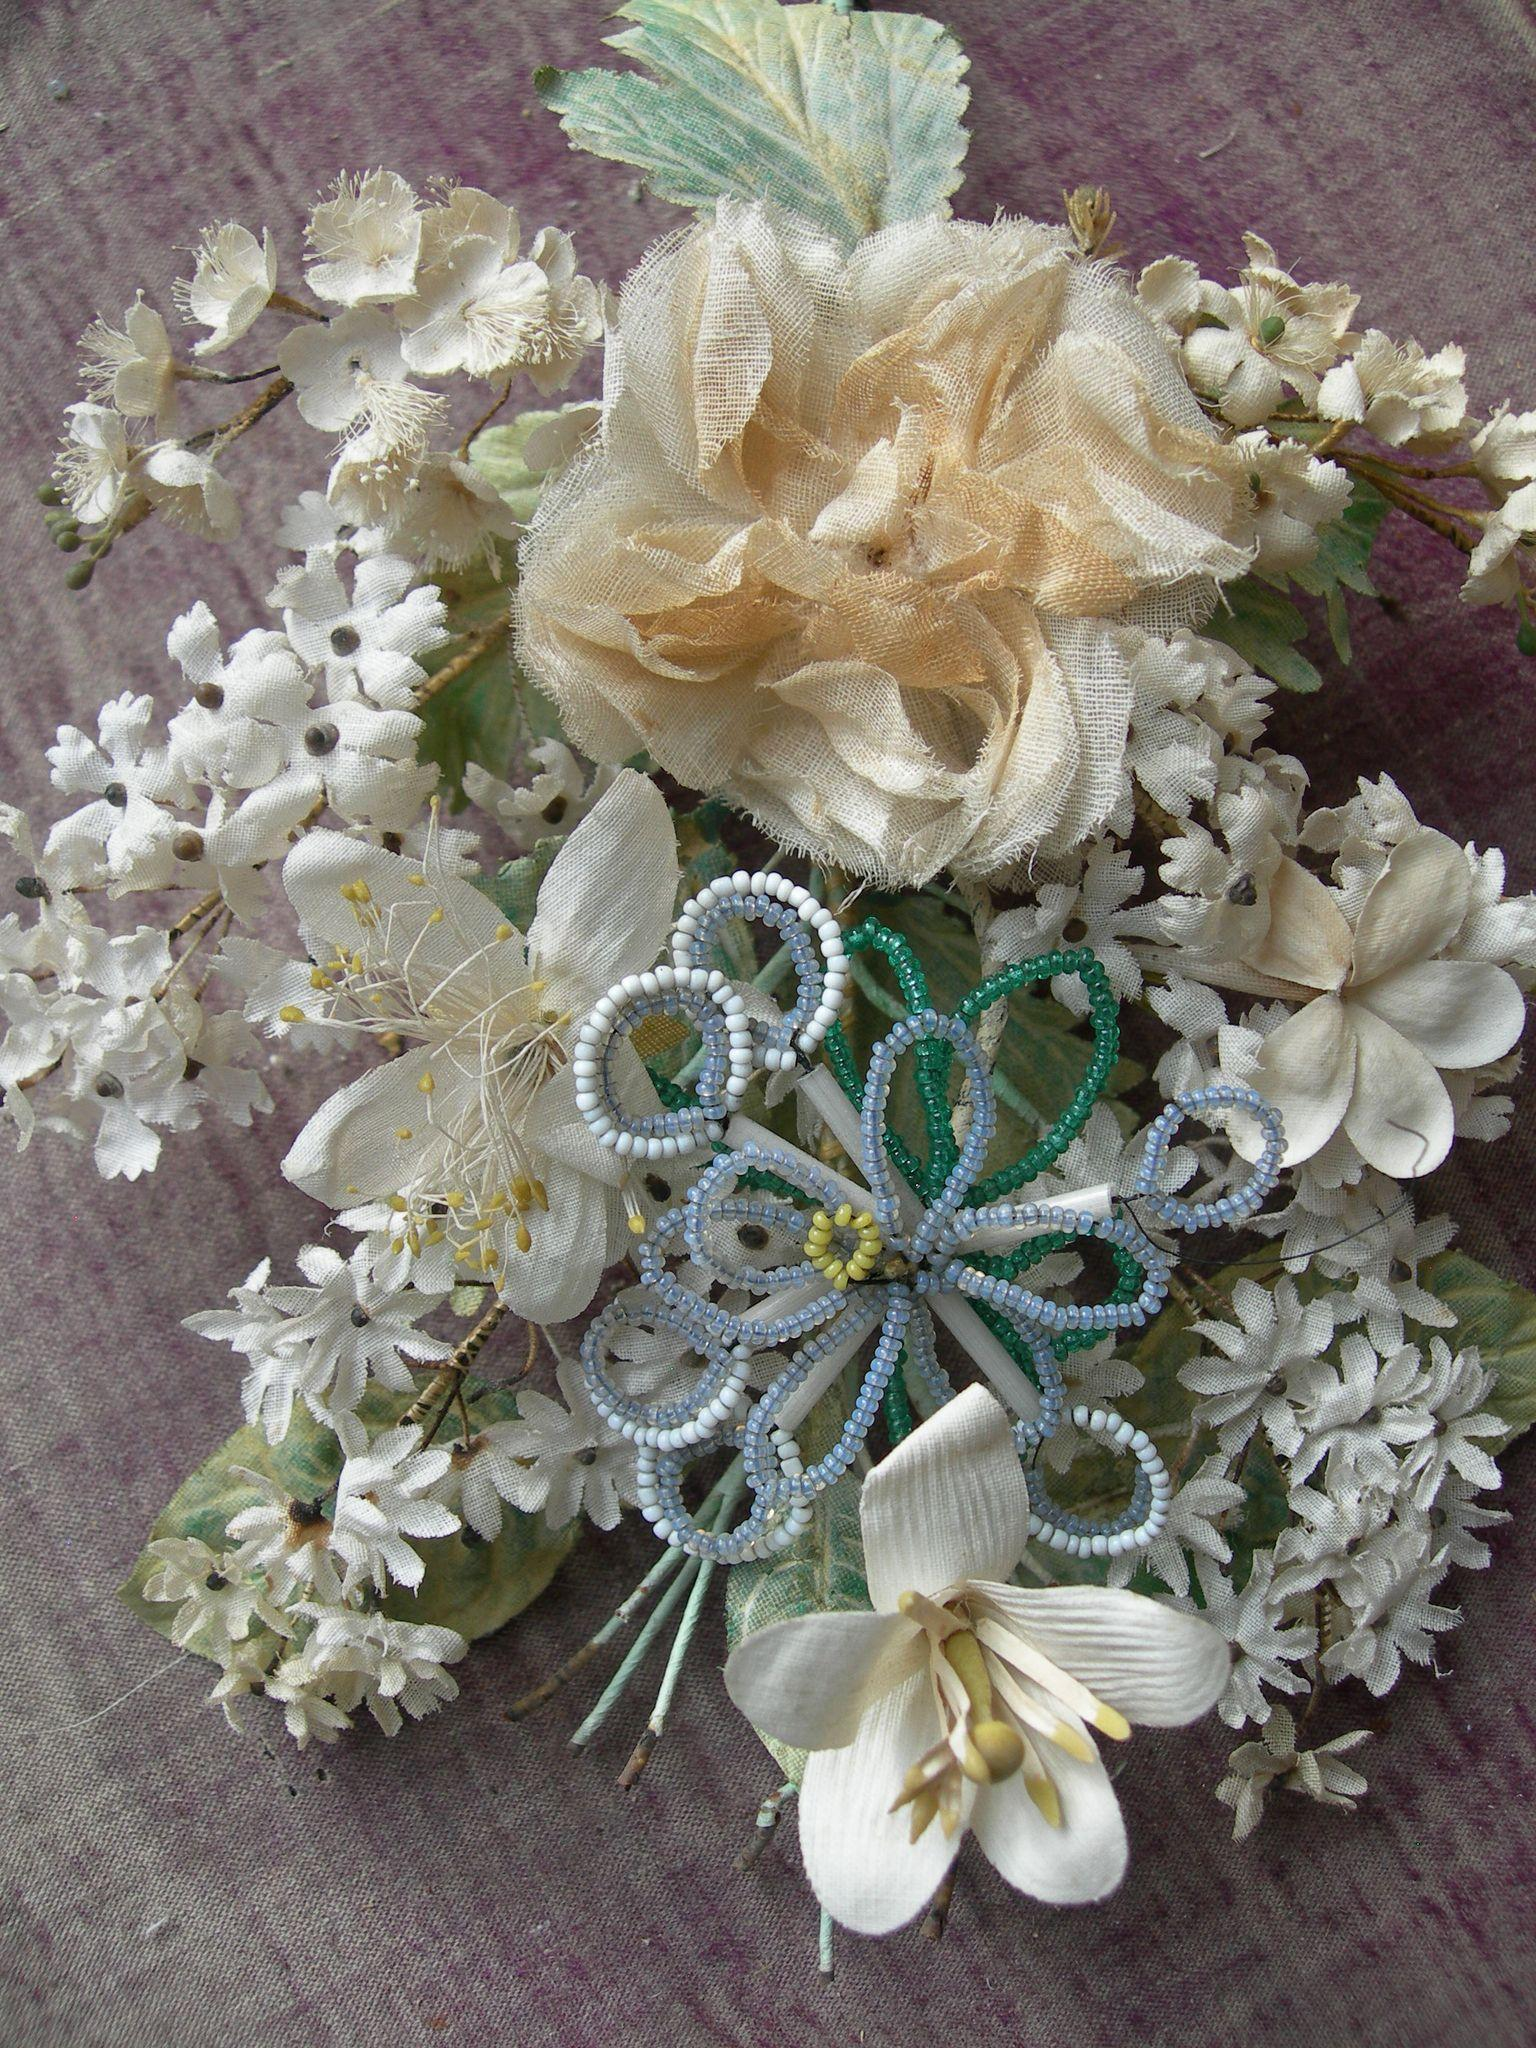 French 1860s handmade fabric flowers & glass beads wedding bridal posy bouquet corsage